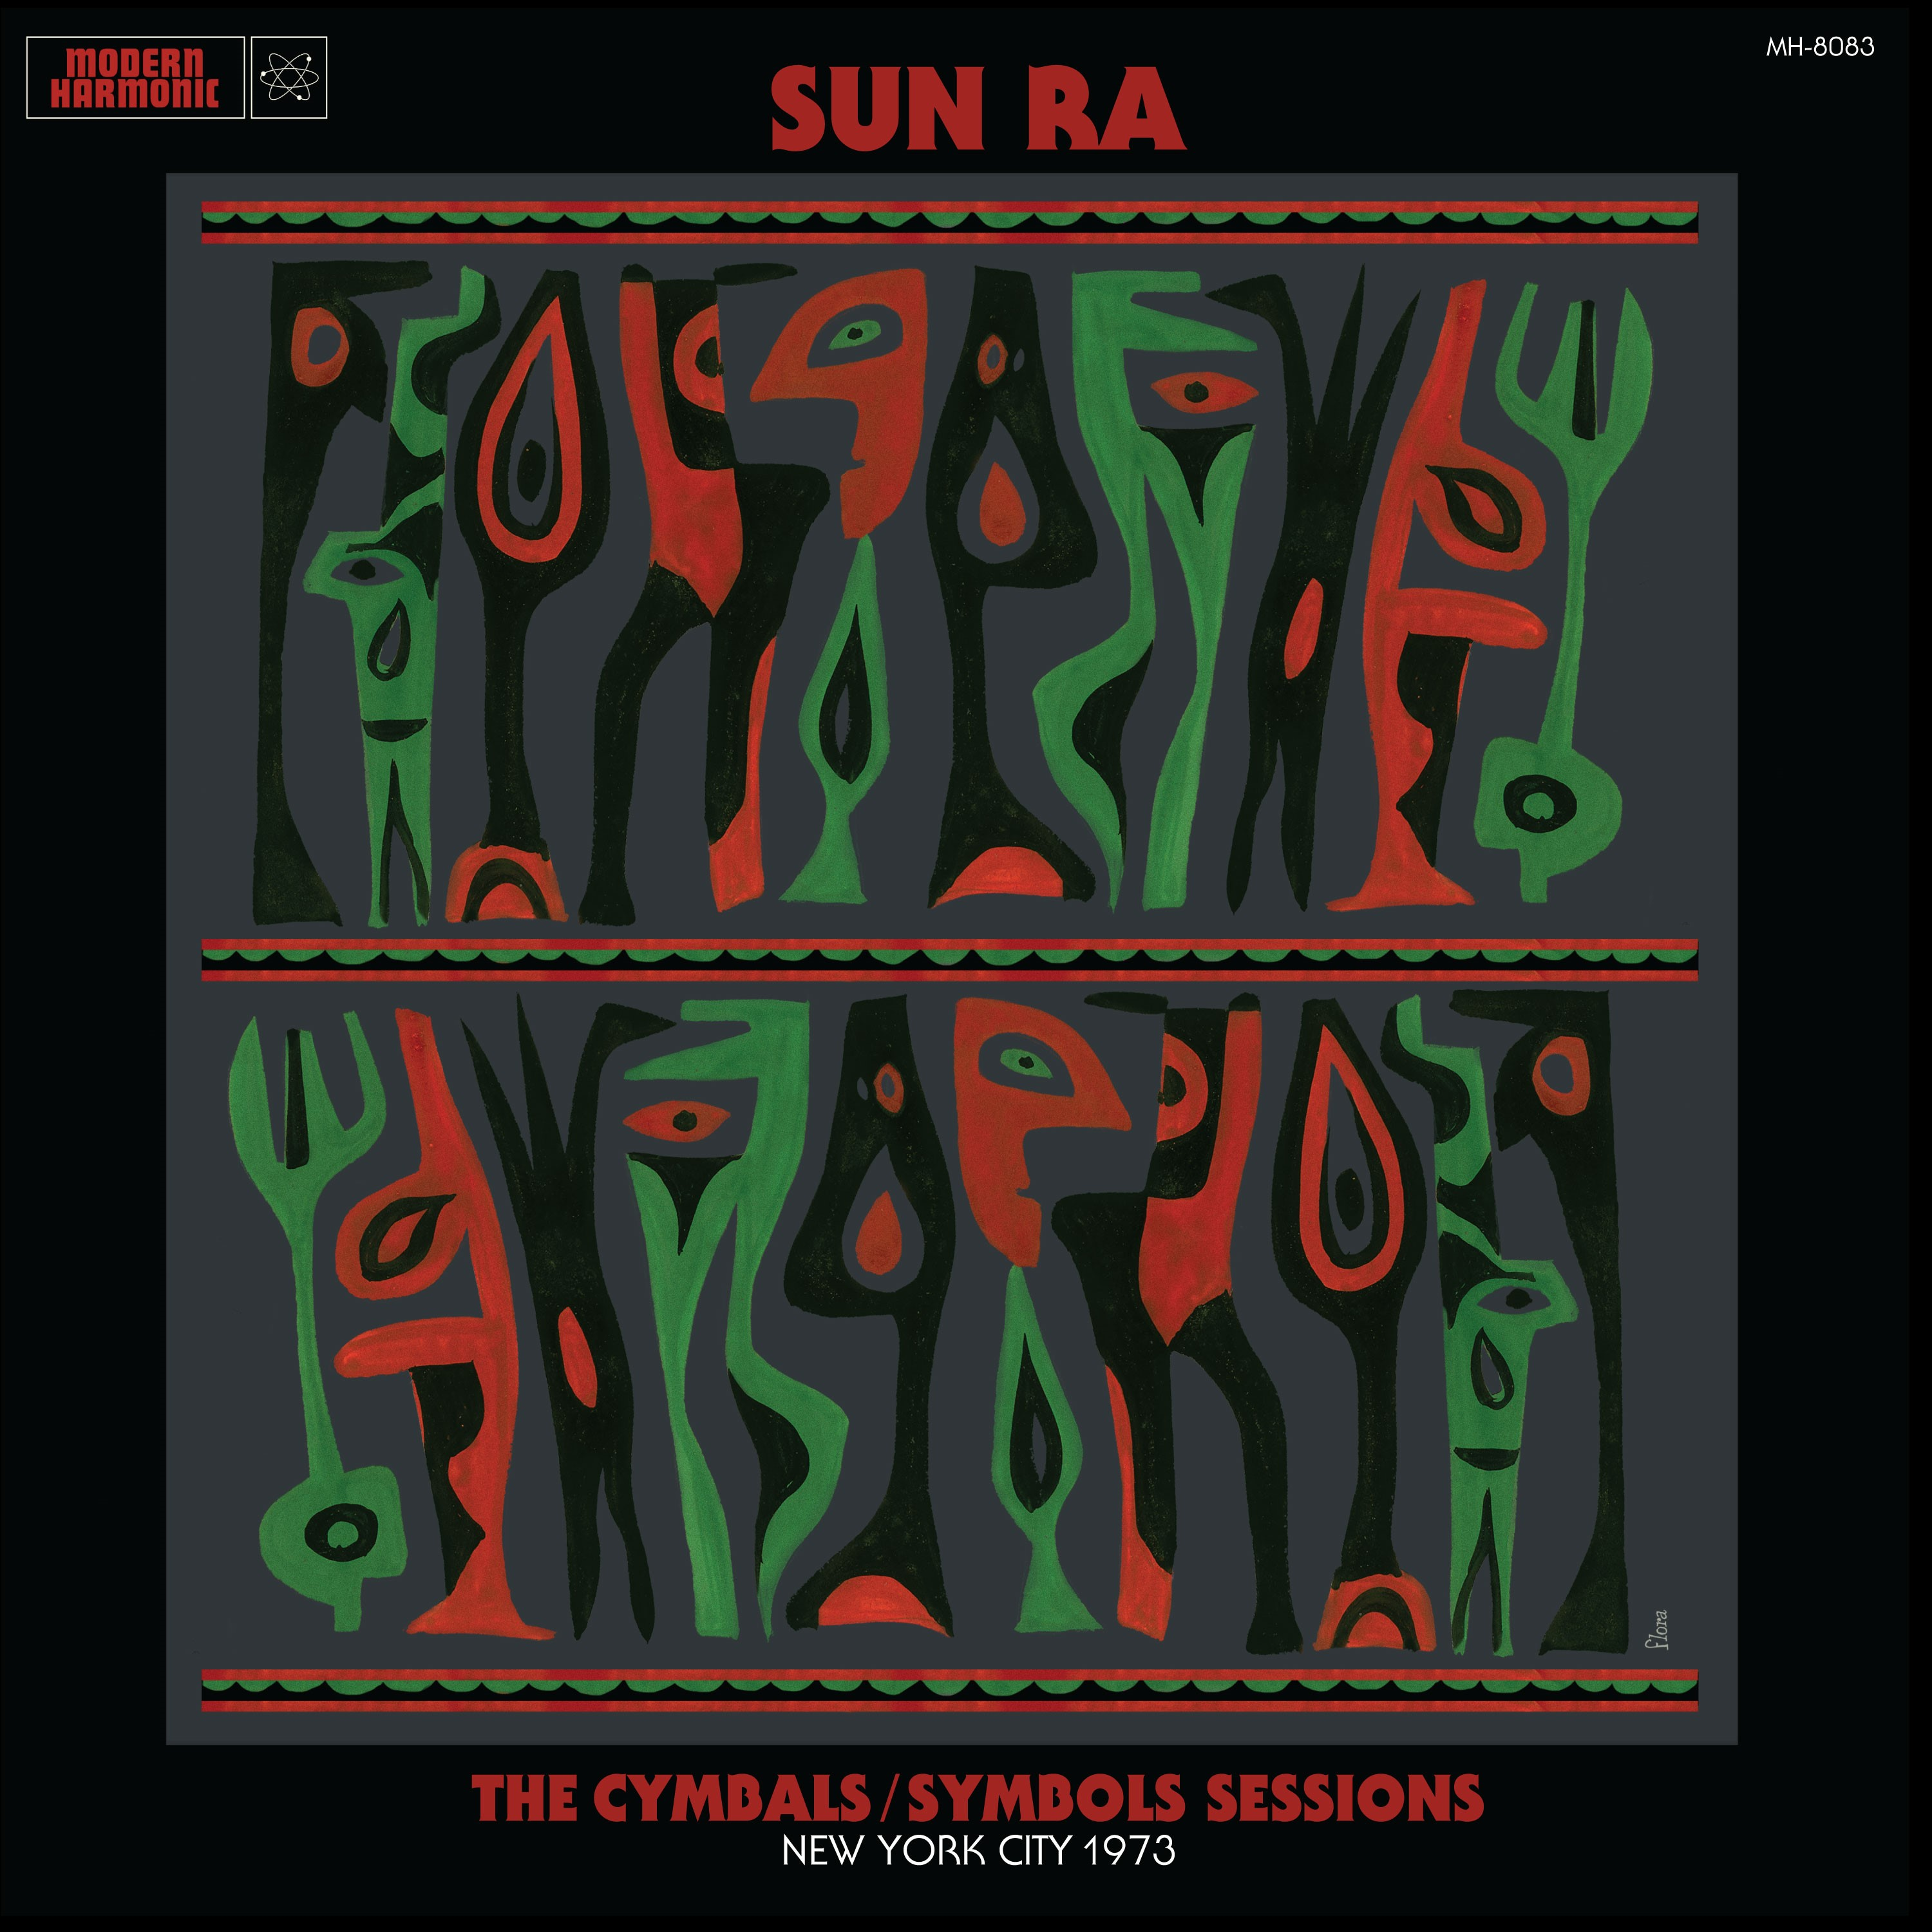 Sun Ra - The Cymbals/Symbols Sessions: New York City 1973 - 2-CD